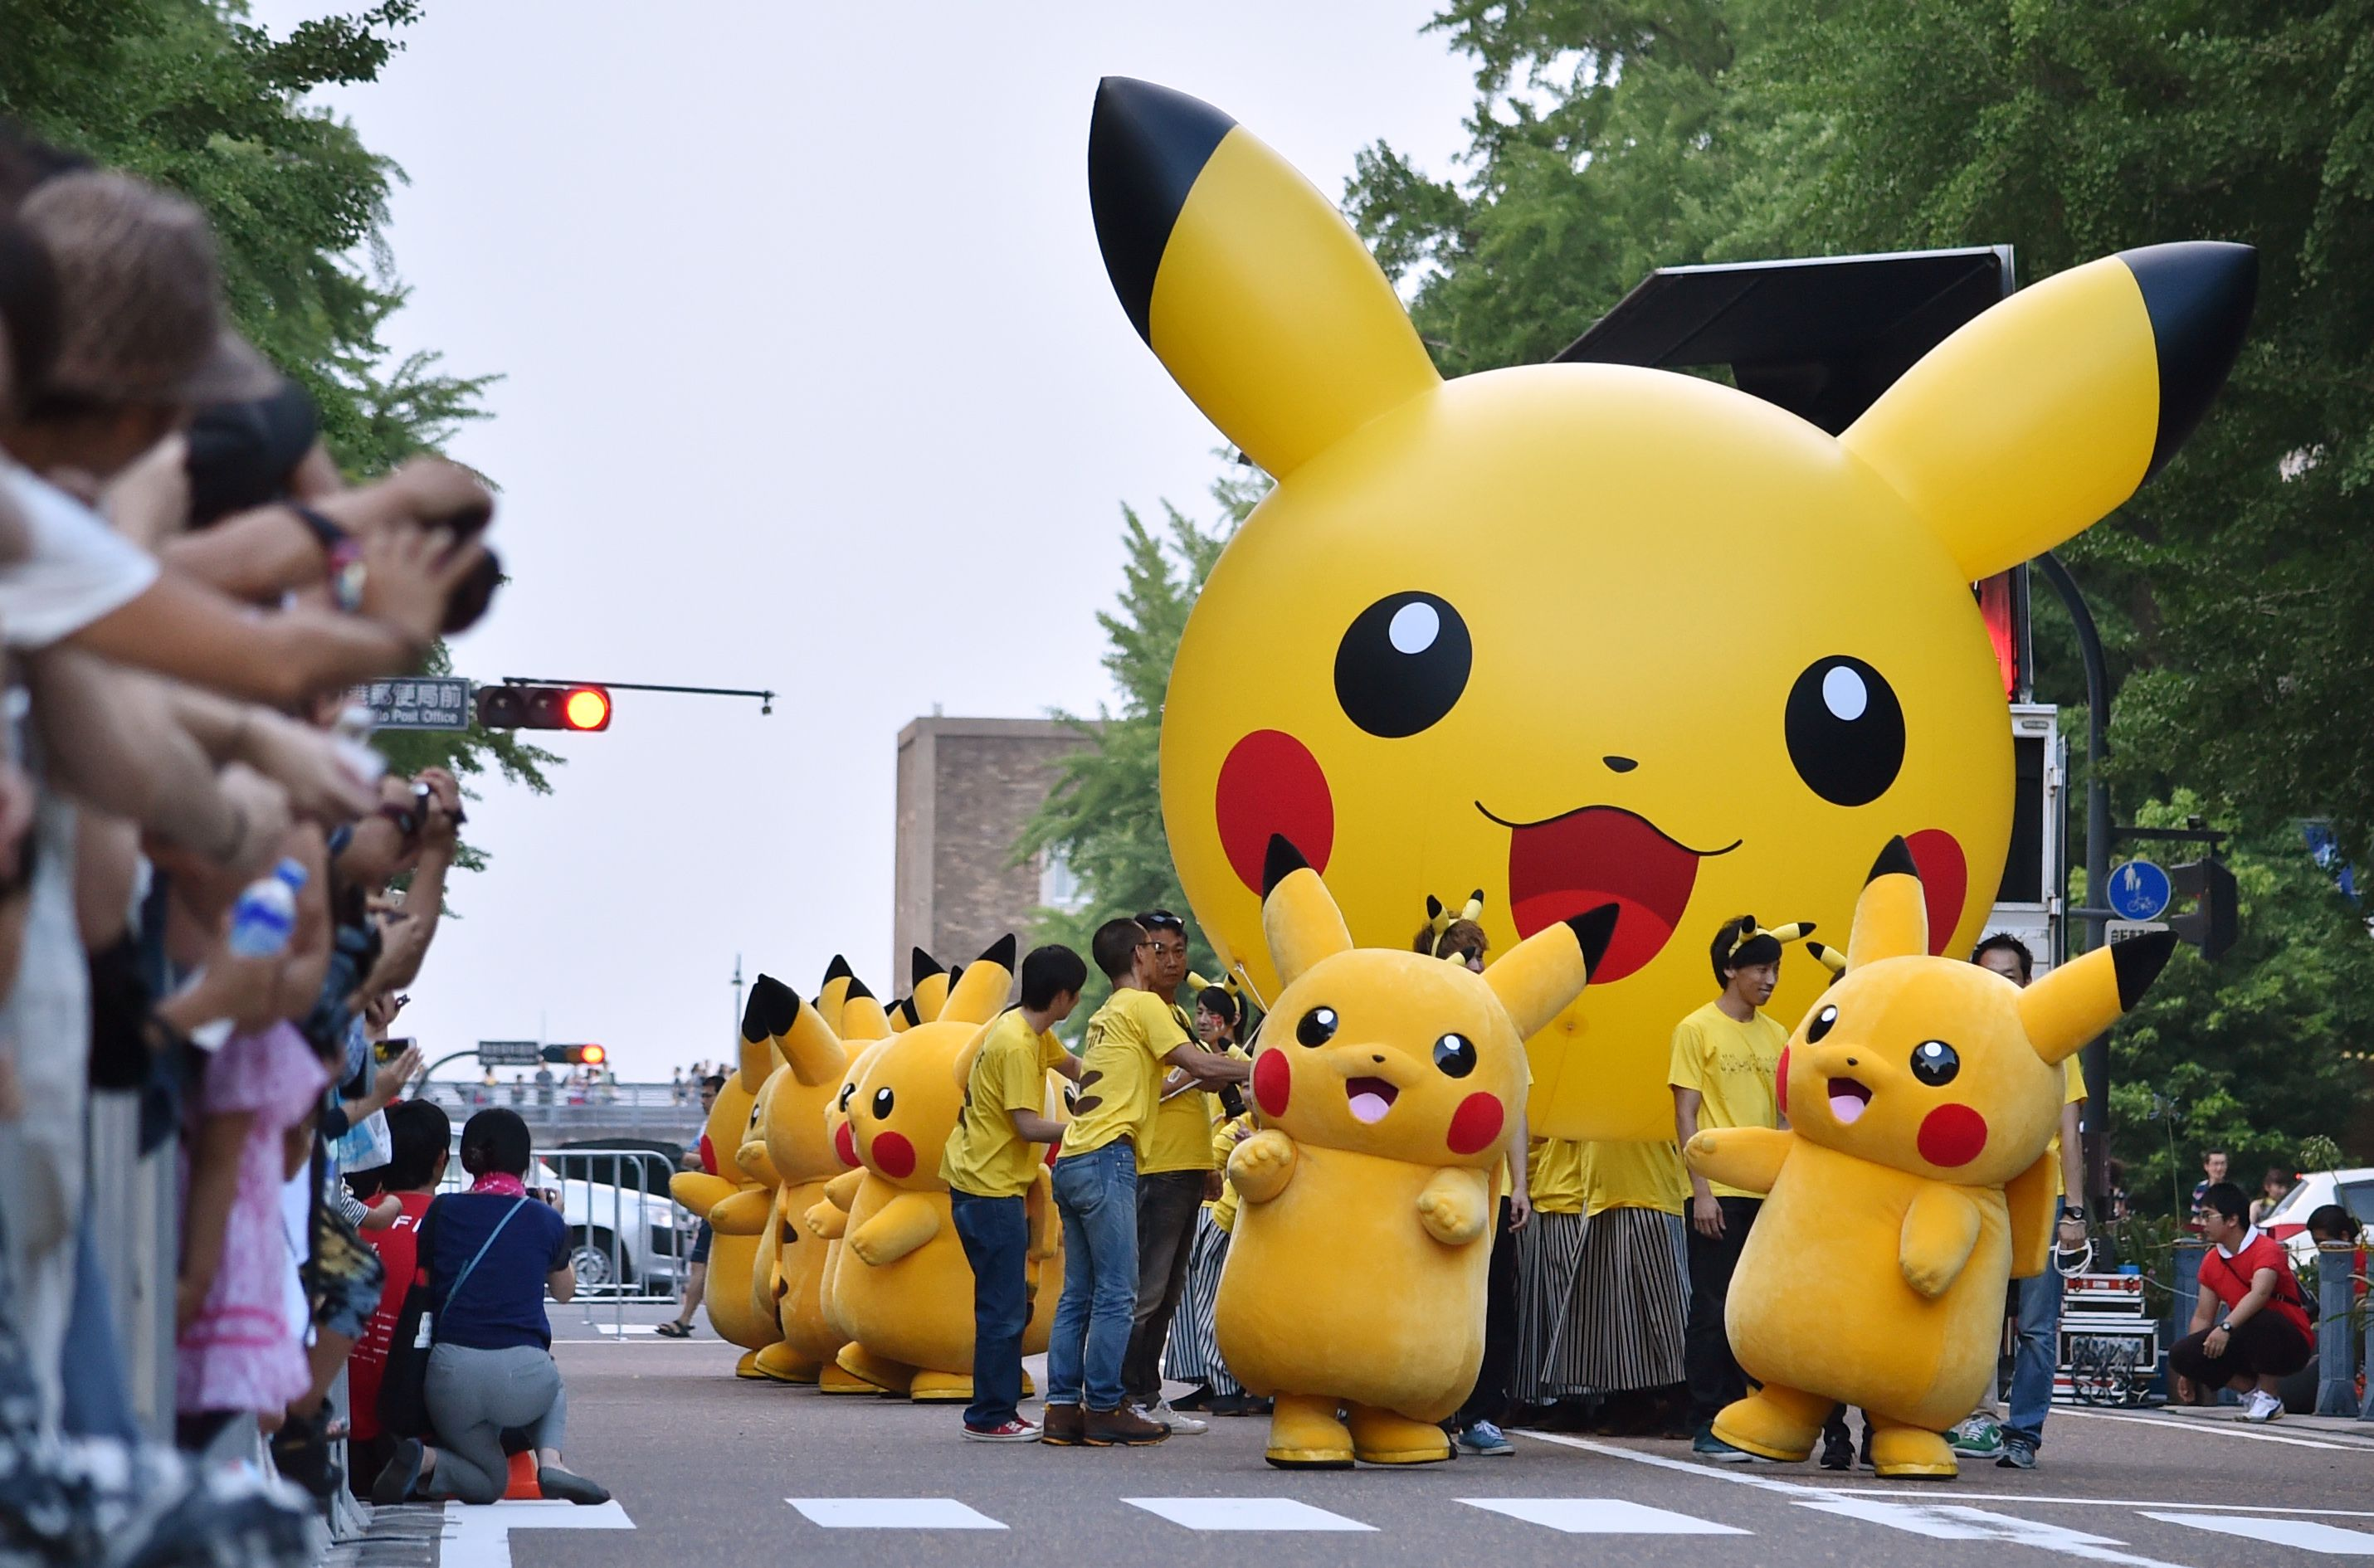 (FILES) This file photo taken on August 2, 2015 shows costumed performers as Pikachu, the popular animation Pokemon series character, performing at the Yokohama Dance Parade in Yokohama. Legions of Pokemon fans were left disappointed on July 20, 2016 after a rumoured release of the franchise's hugely popular smartphone game in Japan proved wrong. / AFP PHOTO / KAZUHIRO NOGI